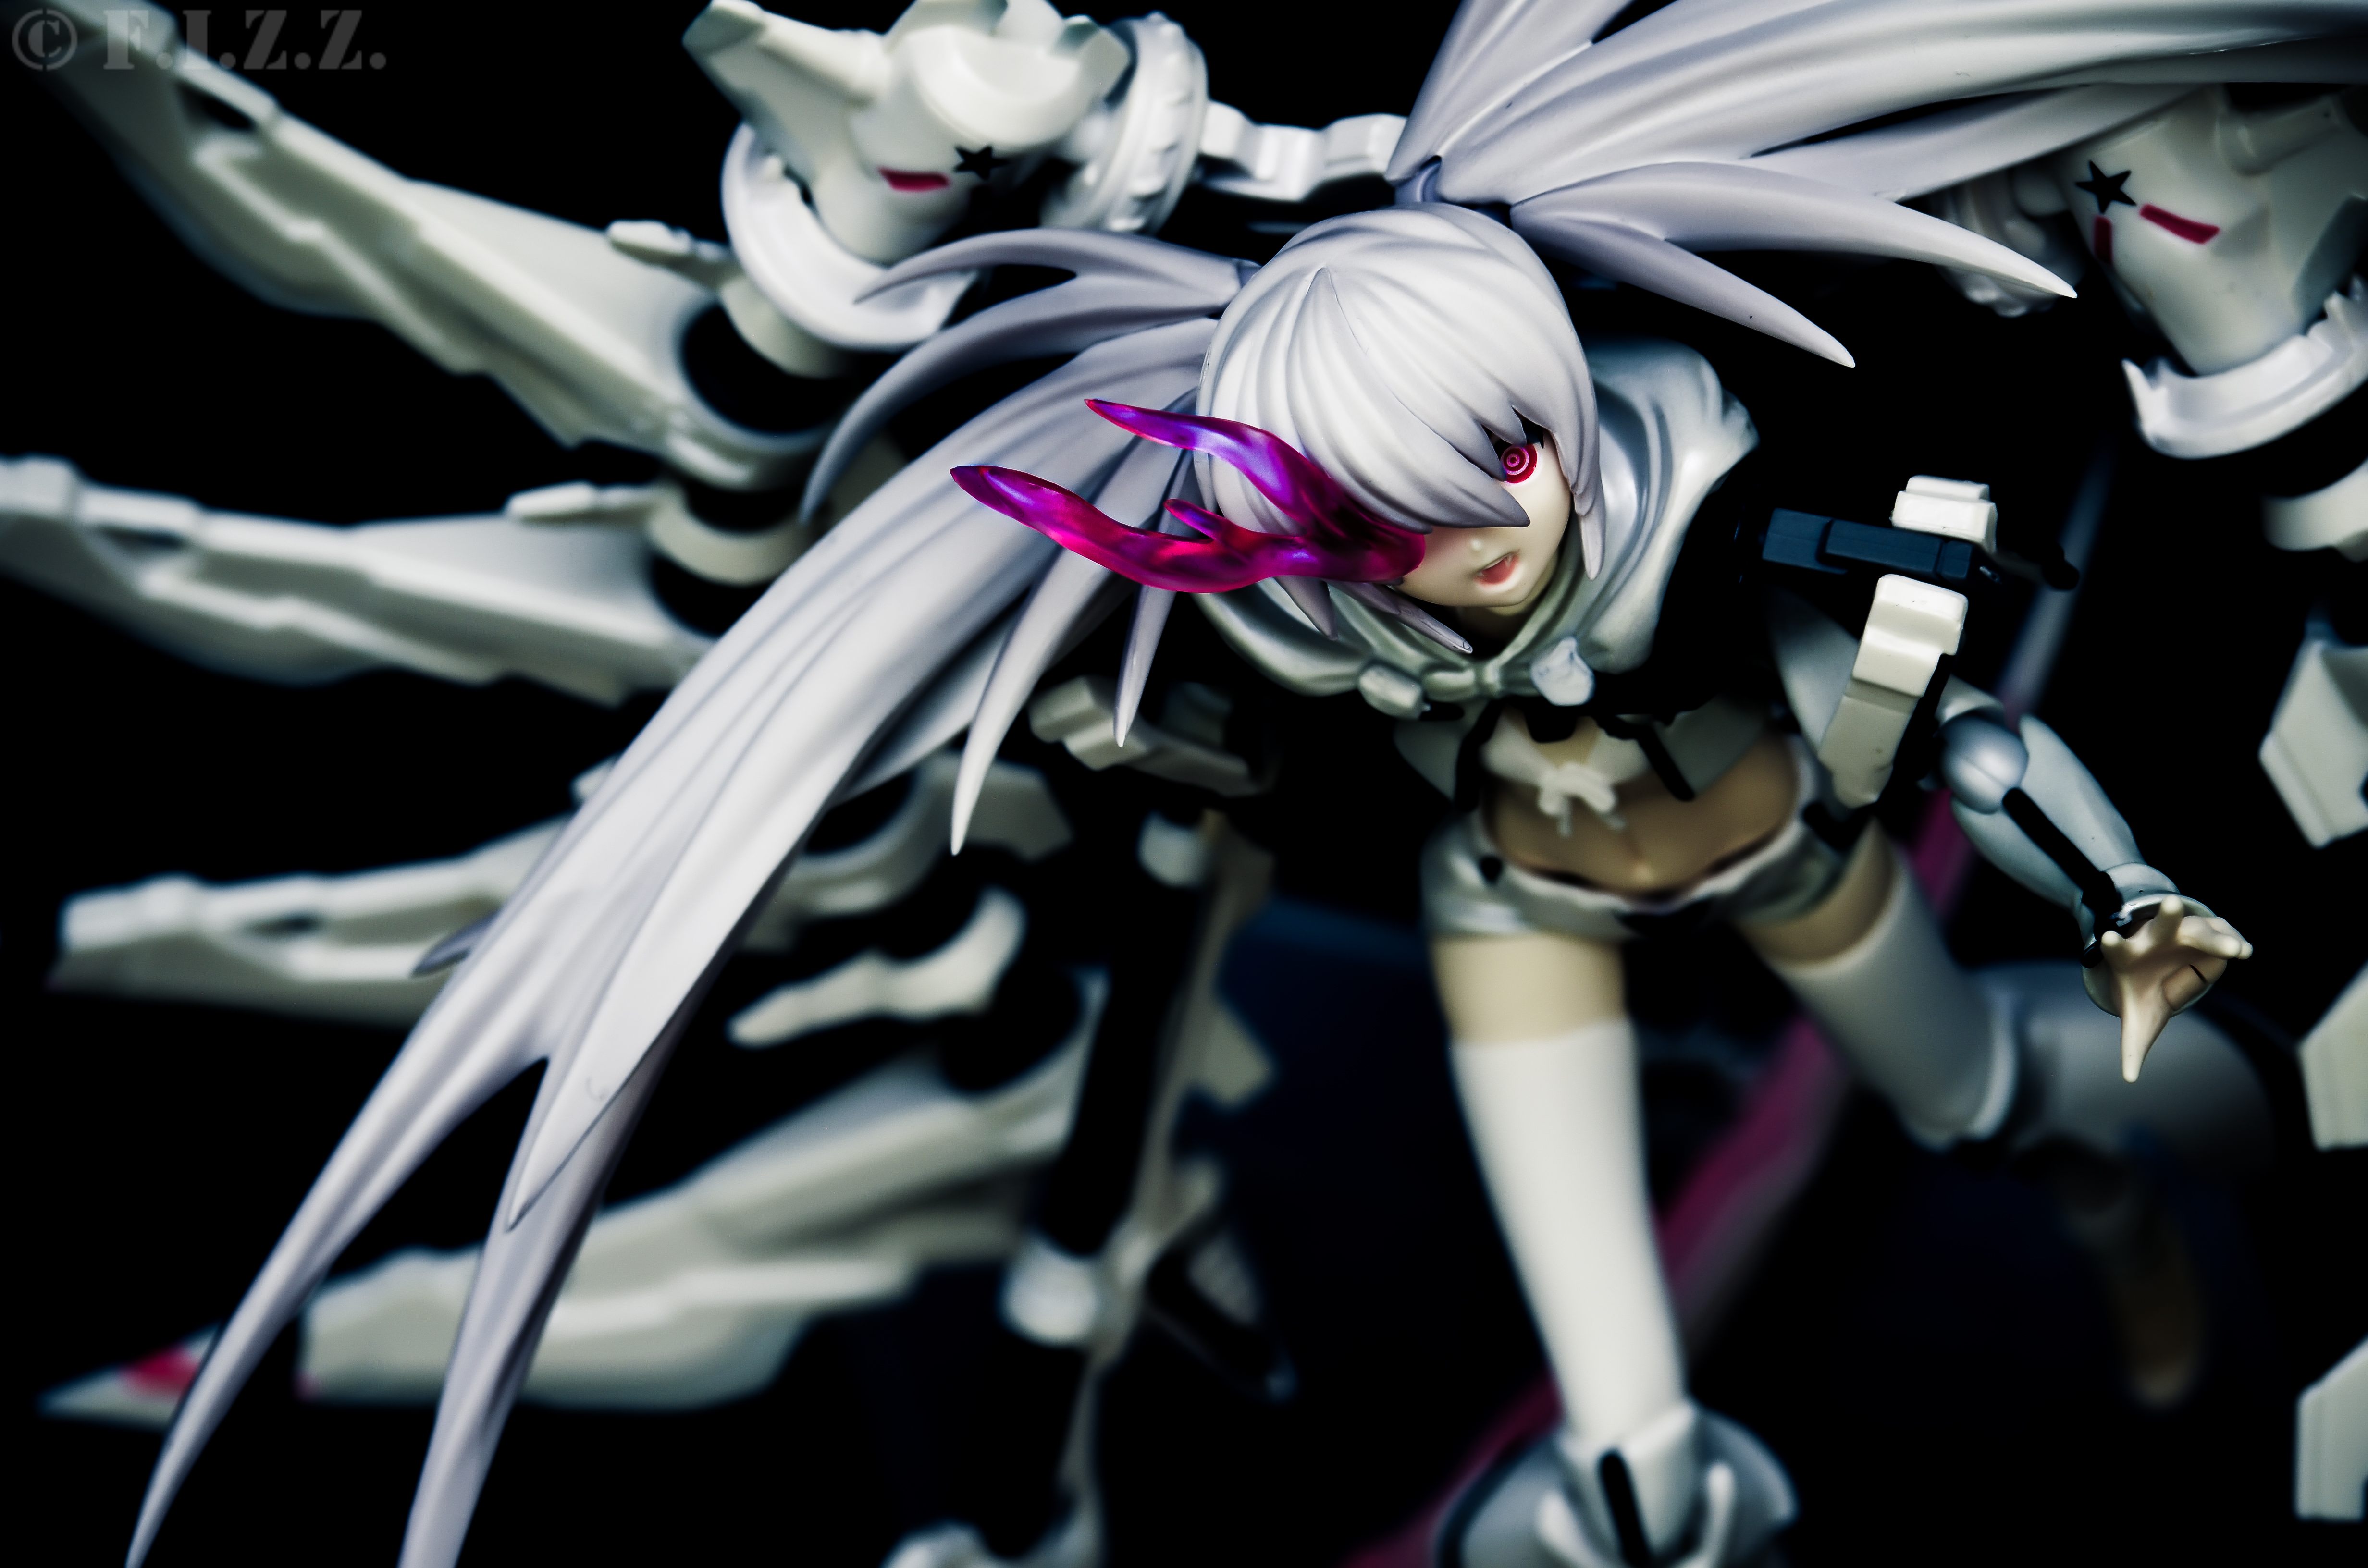 WRS Figma by thechevaliere